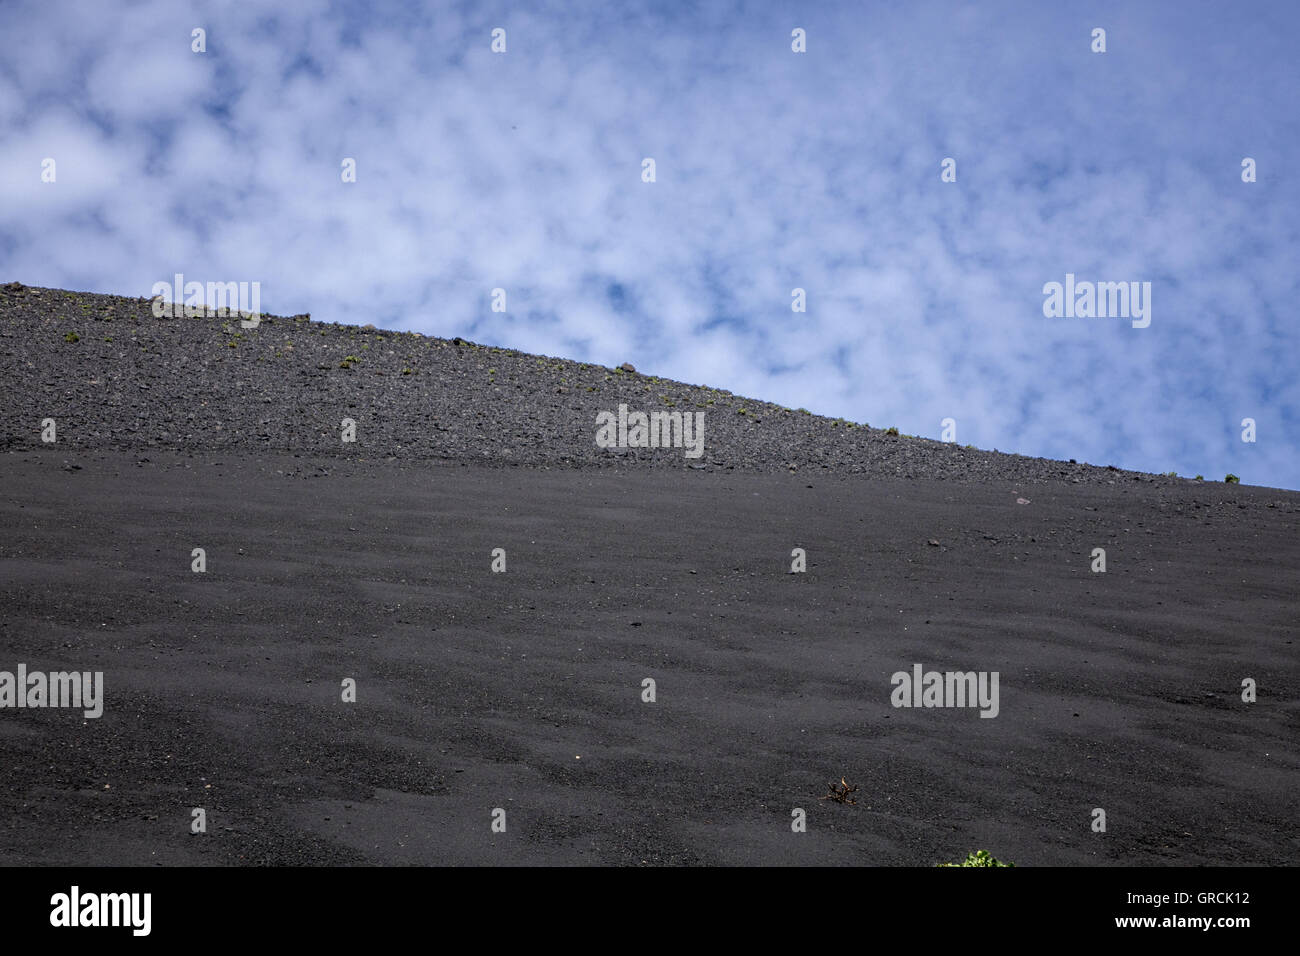 Gentle Slope Of Volcanic Ash, Upper Part Rath Coarse Rock. In The Back Blue Sky With Cotton Wool Clouds. Volcano - Stock Image